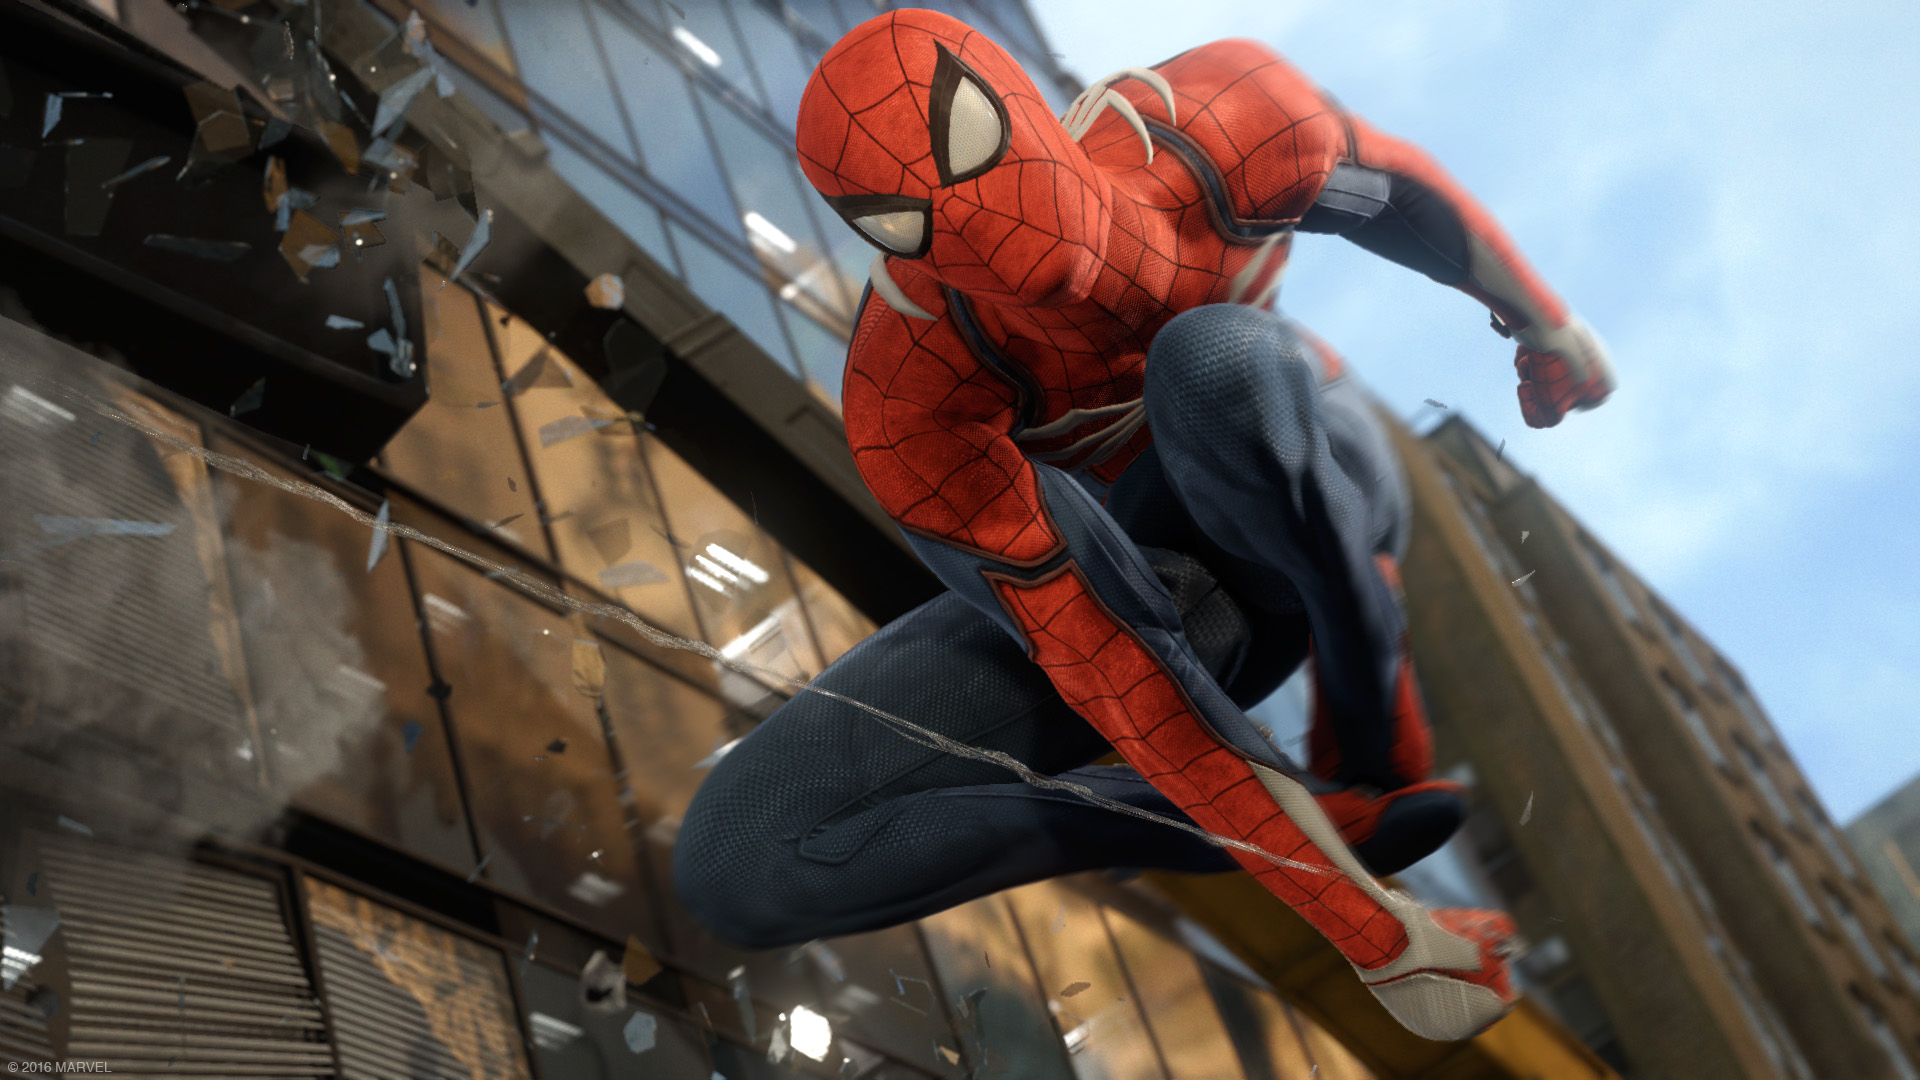 Spider-Man is a PlayStation 4